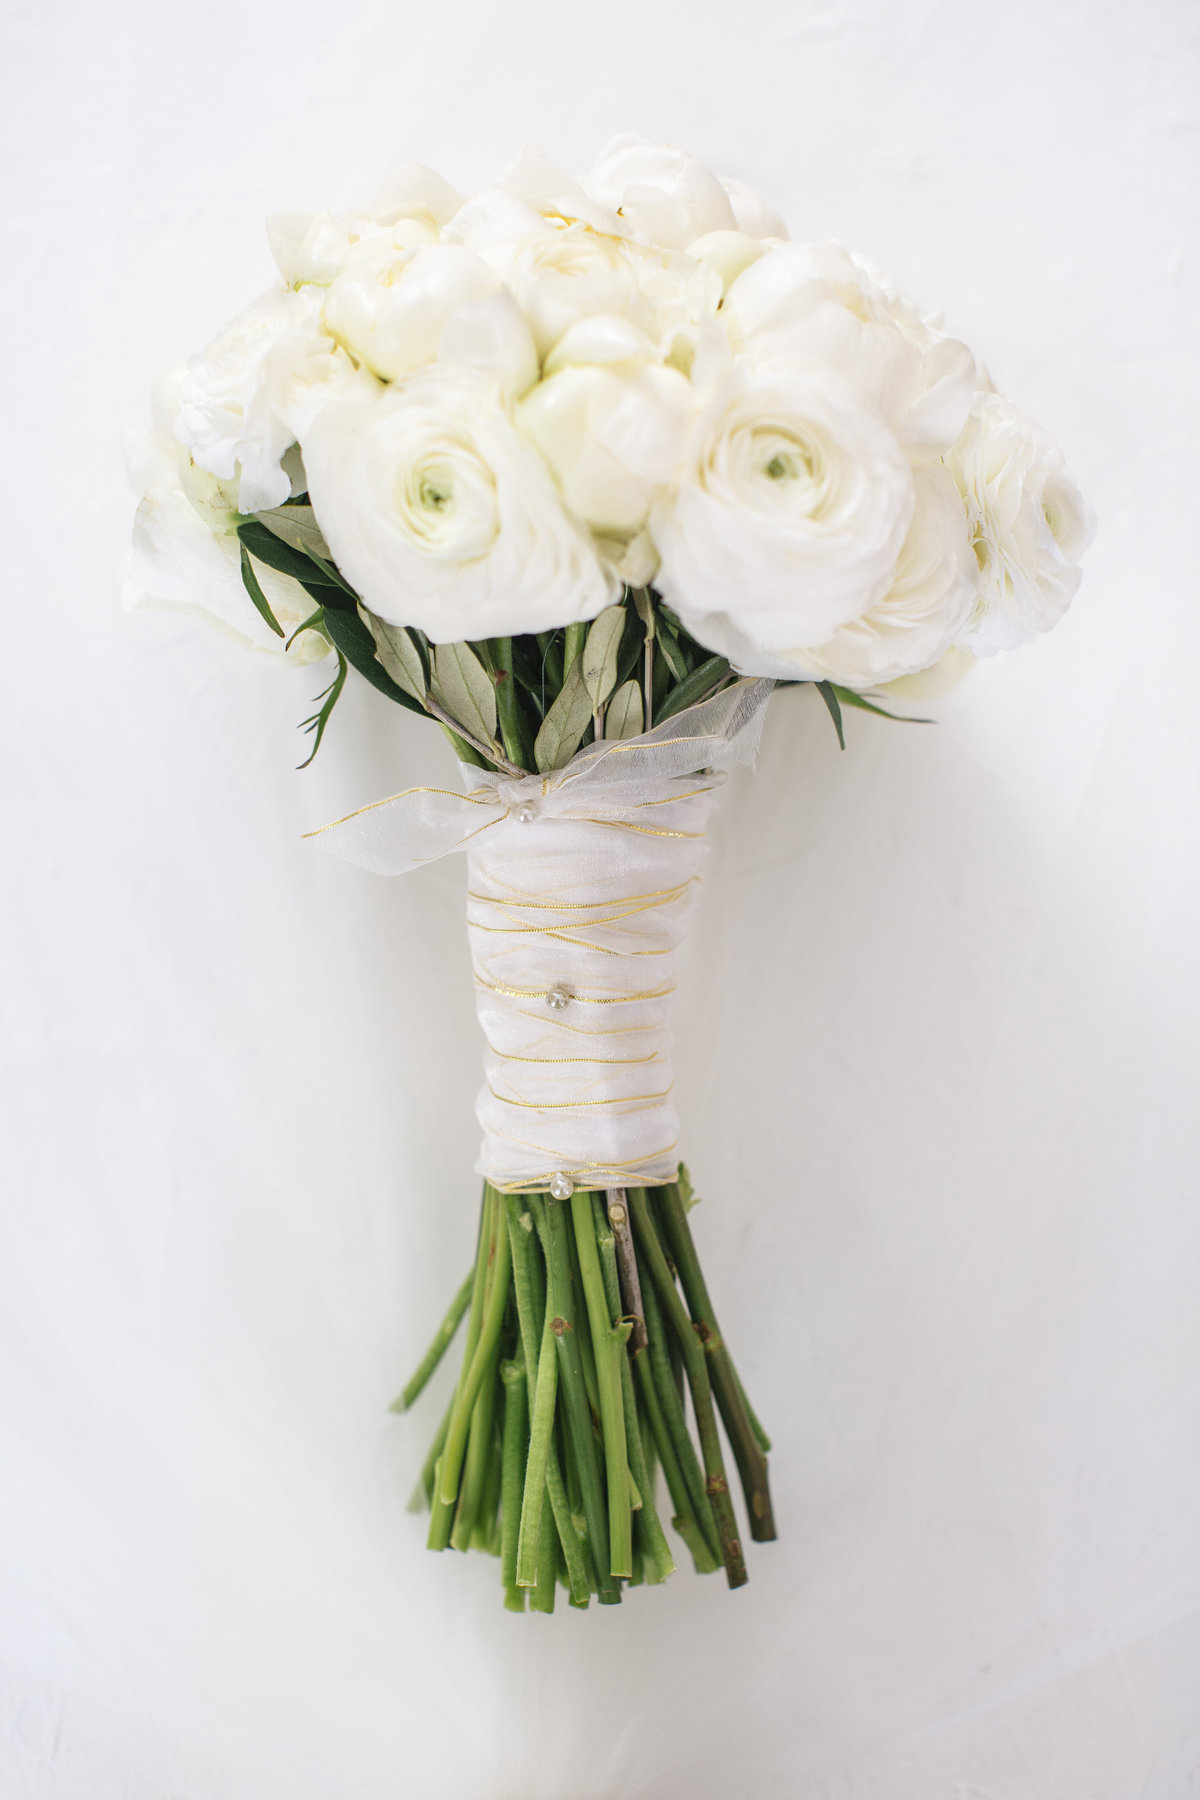 brides flowers for clarks landing yacht club wedding